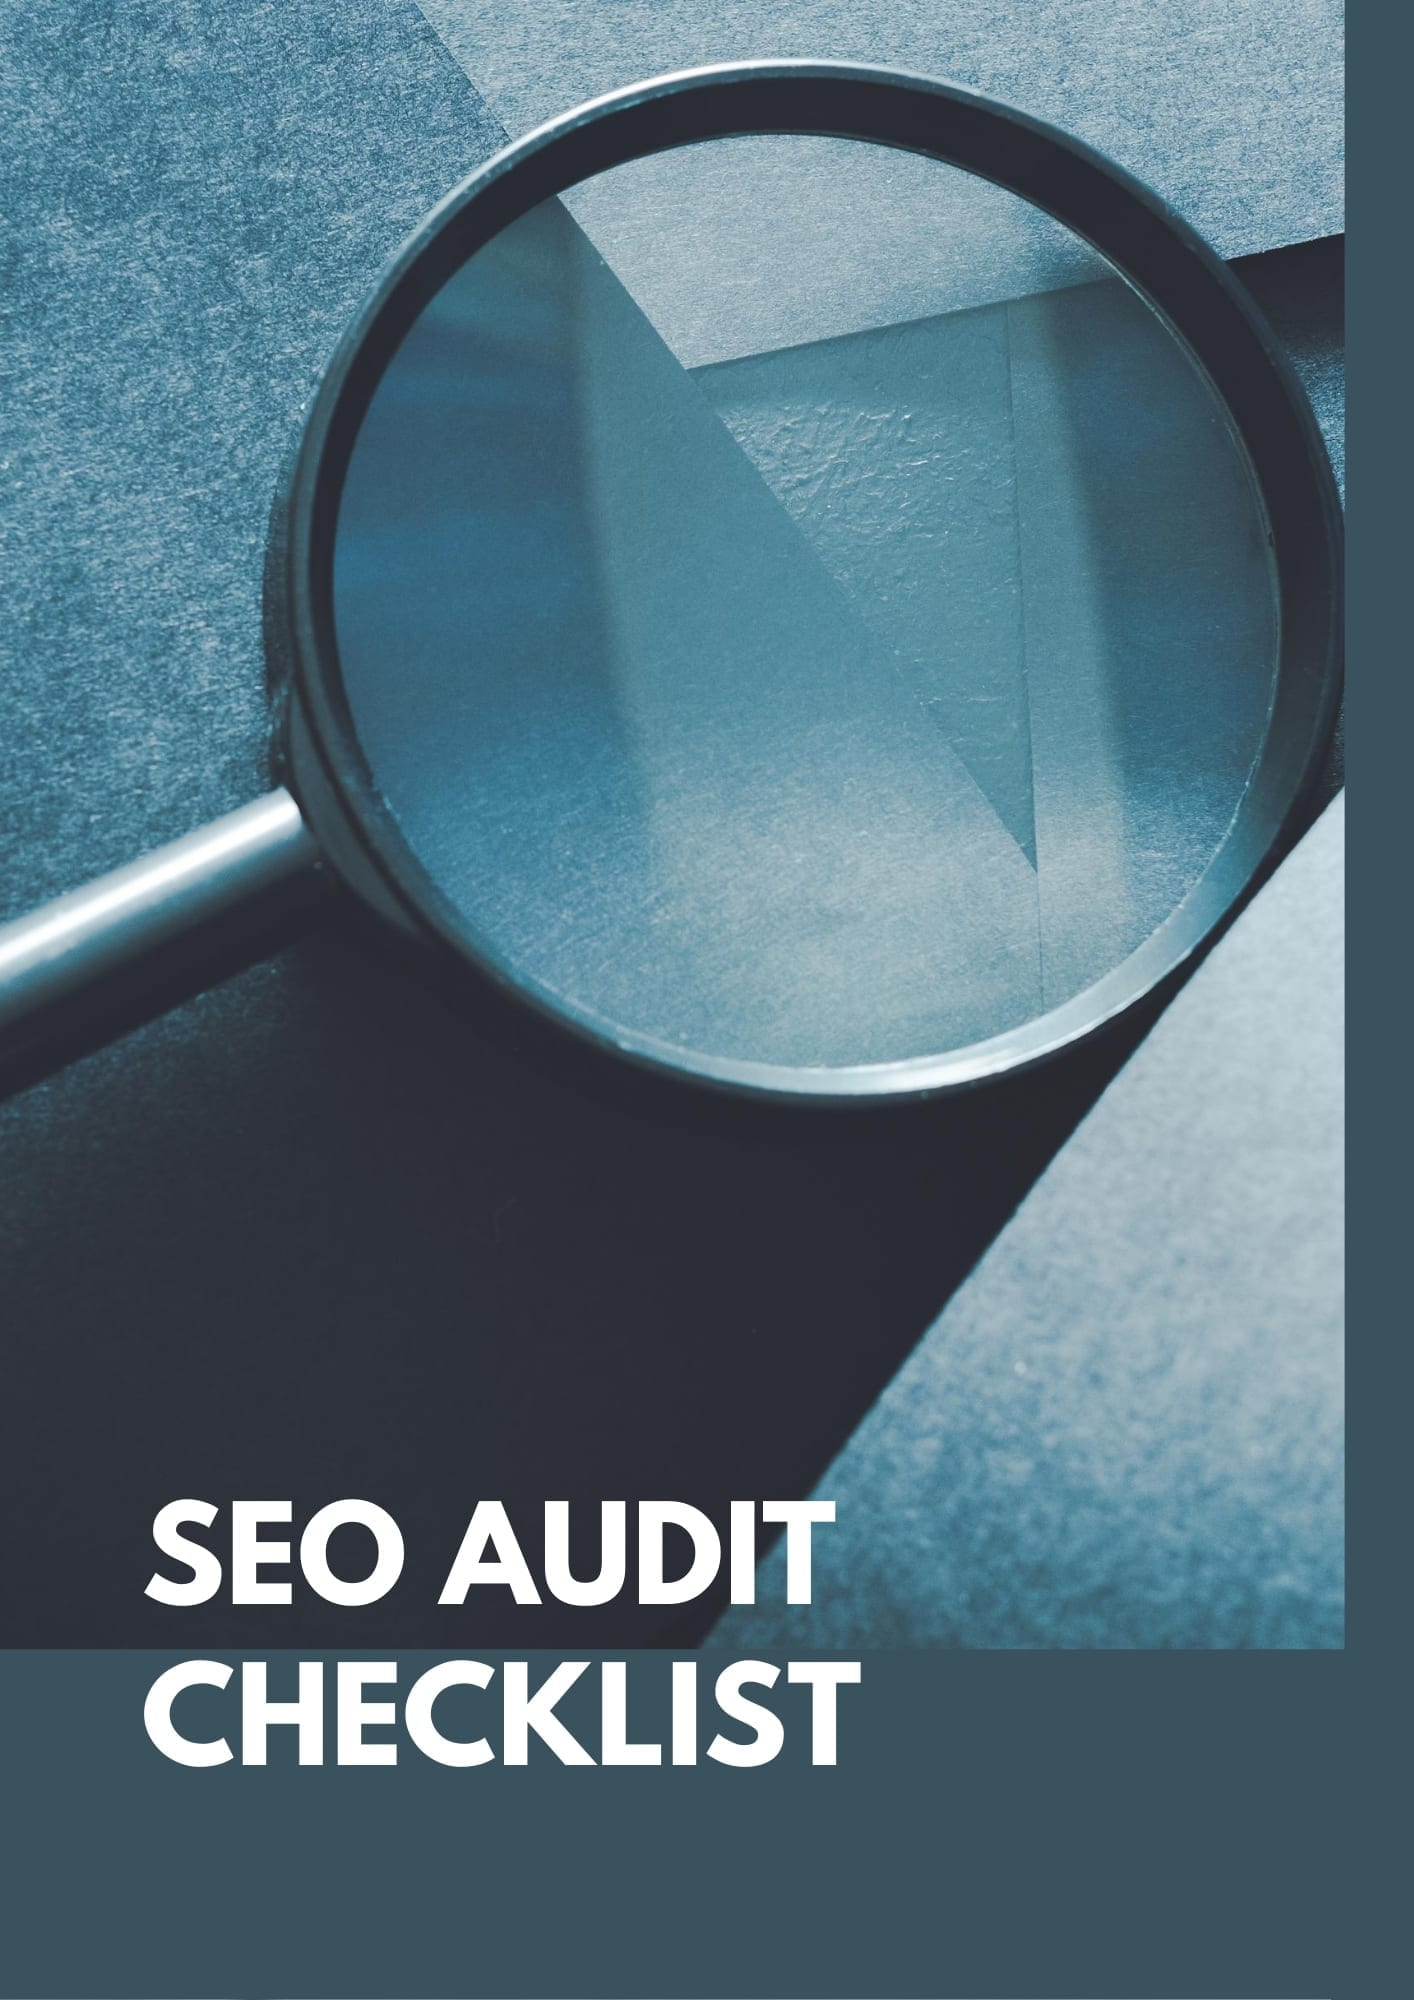 seo audit checklist by nexis novus technology